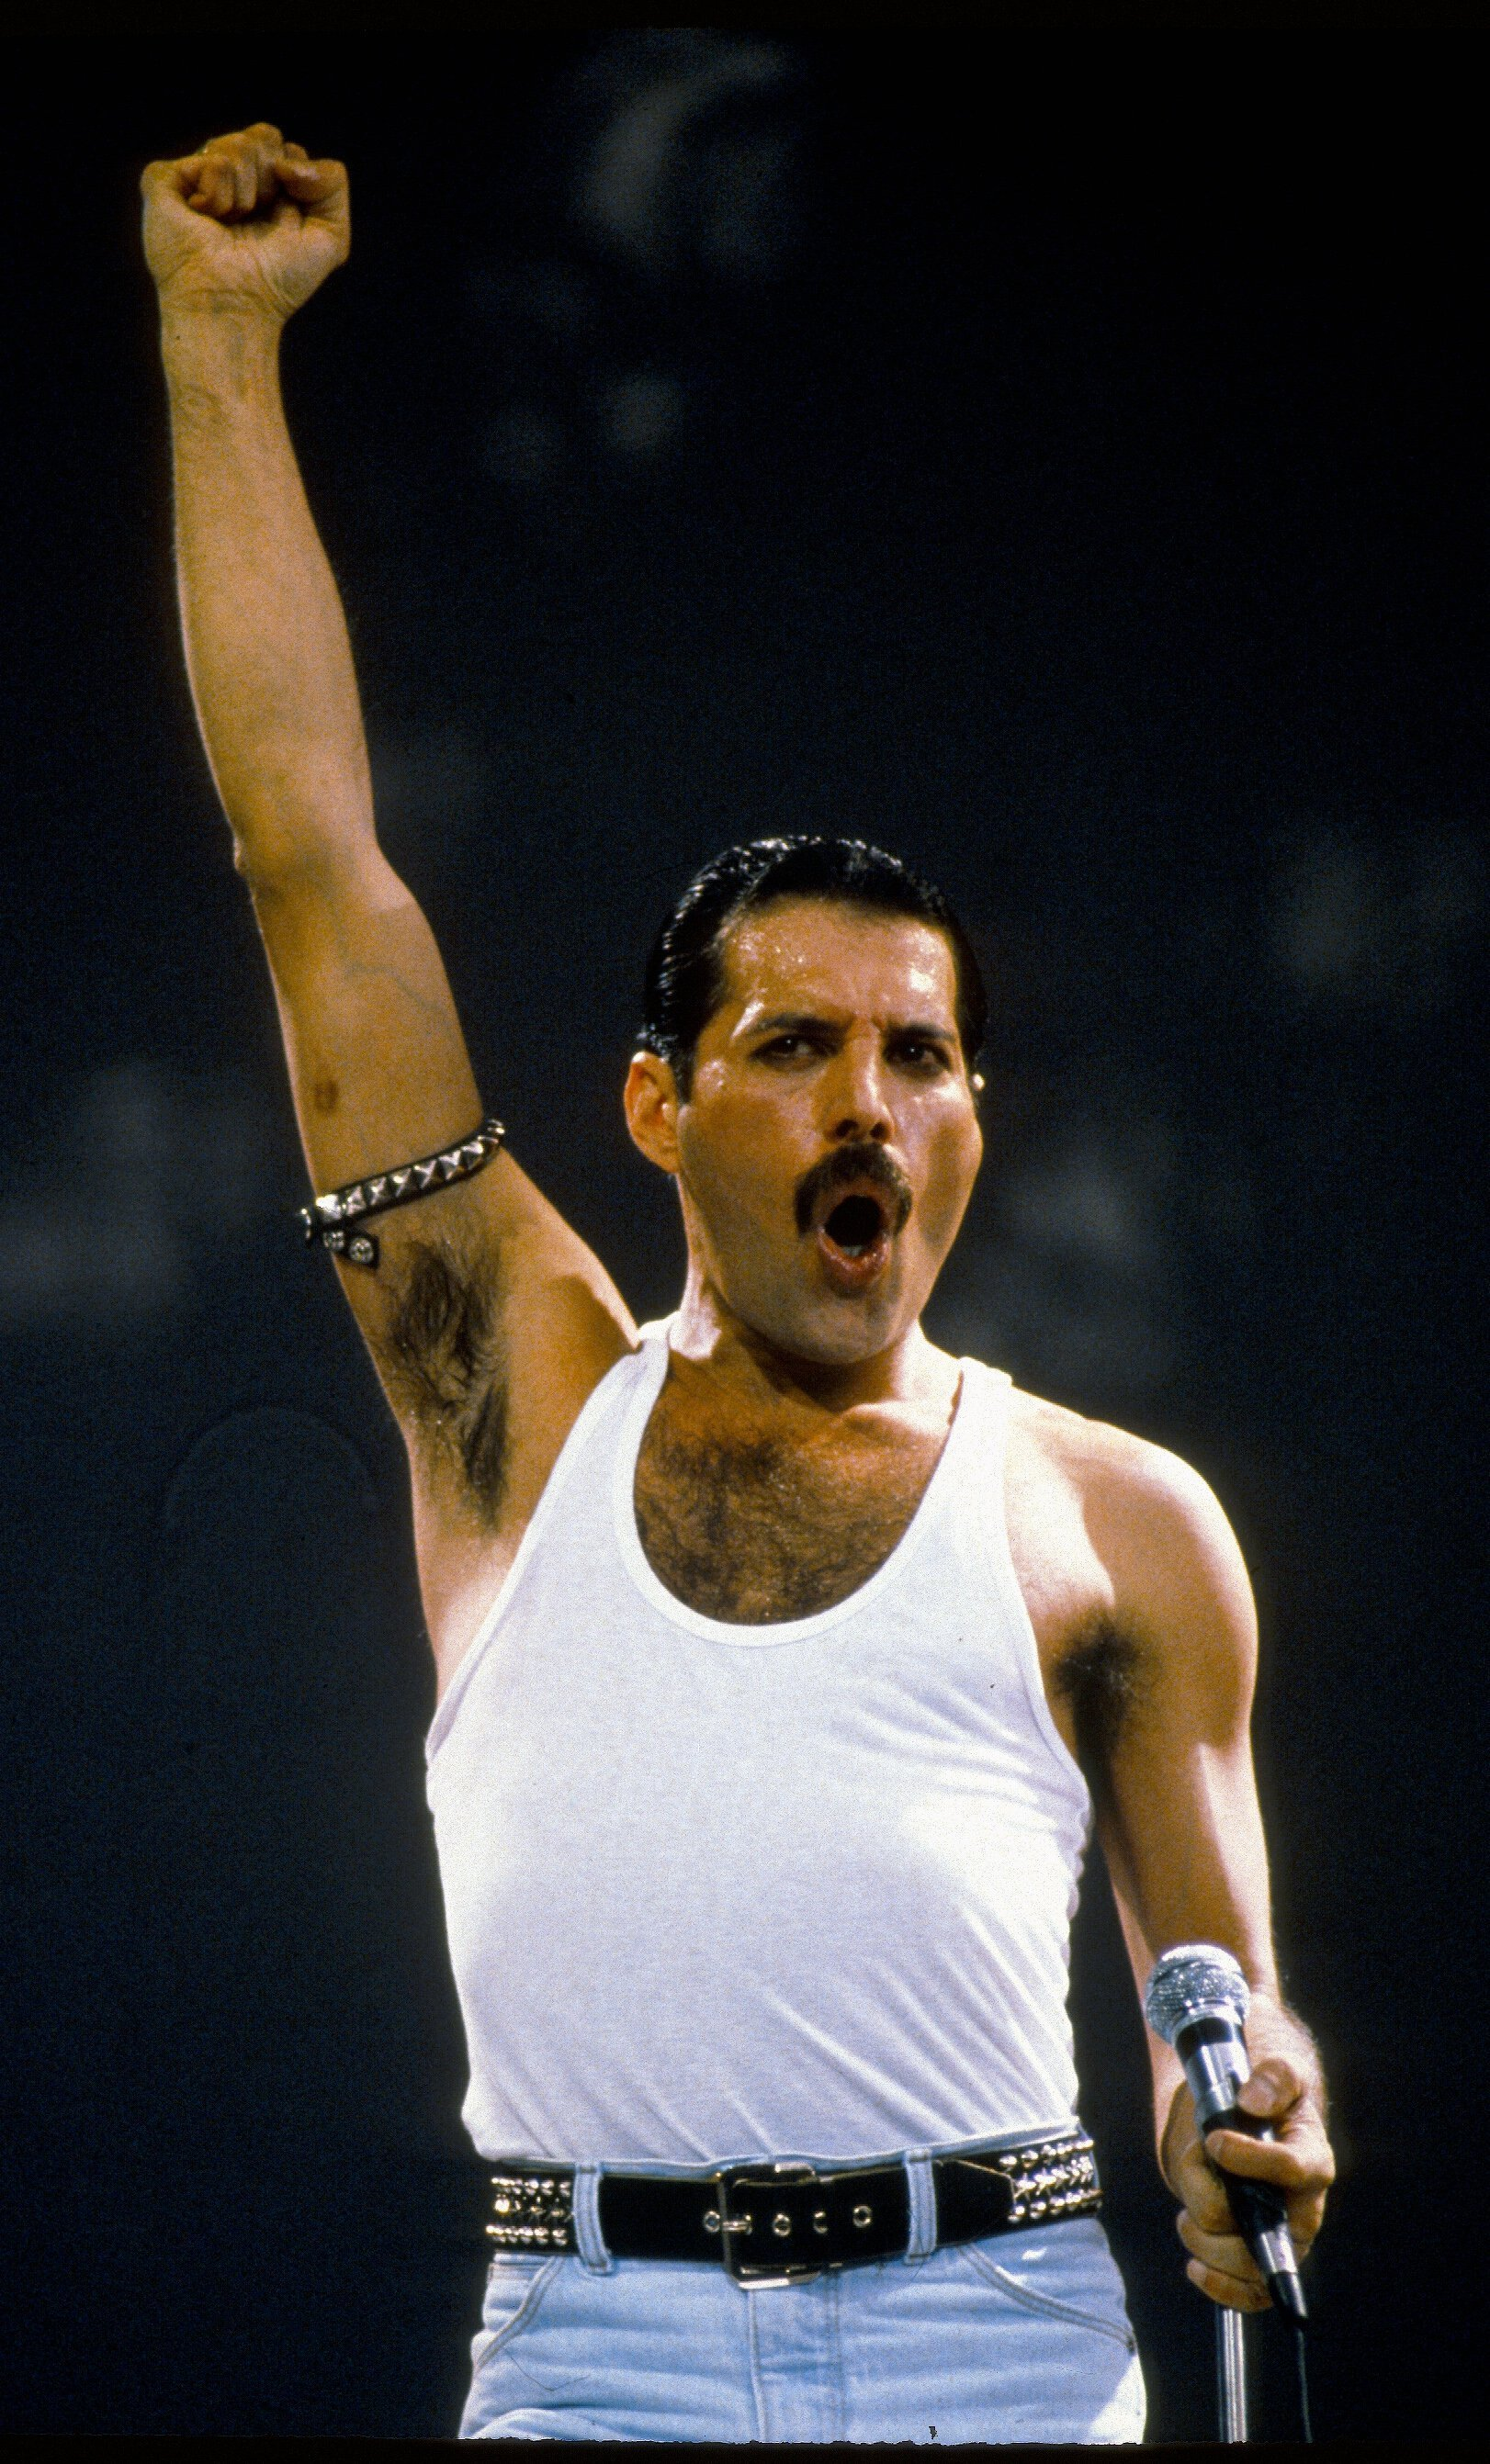 Freddie Mercury at the Live Aid concert on July 13, 1985 in London, England | Source: Getty Images